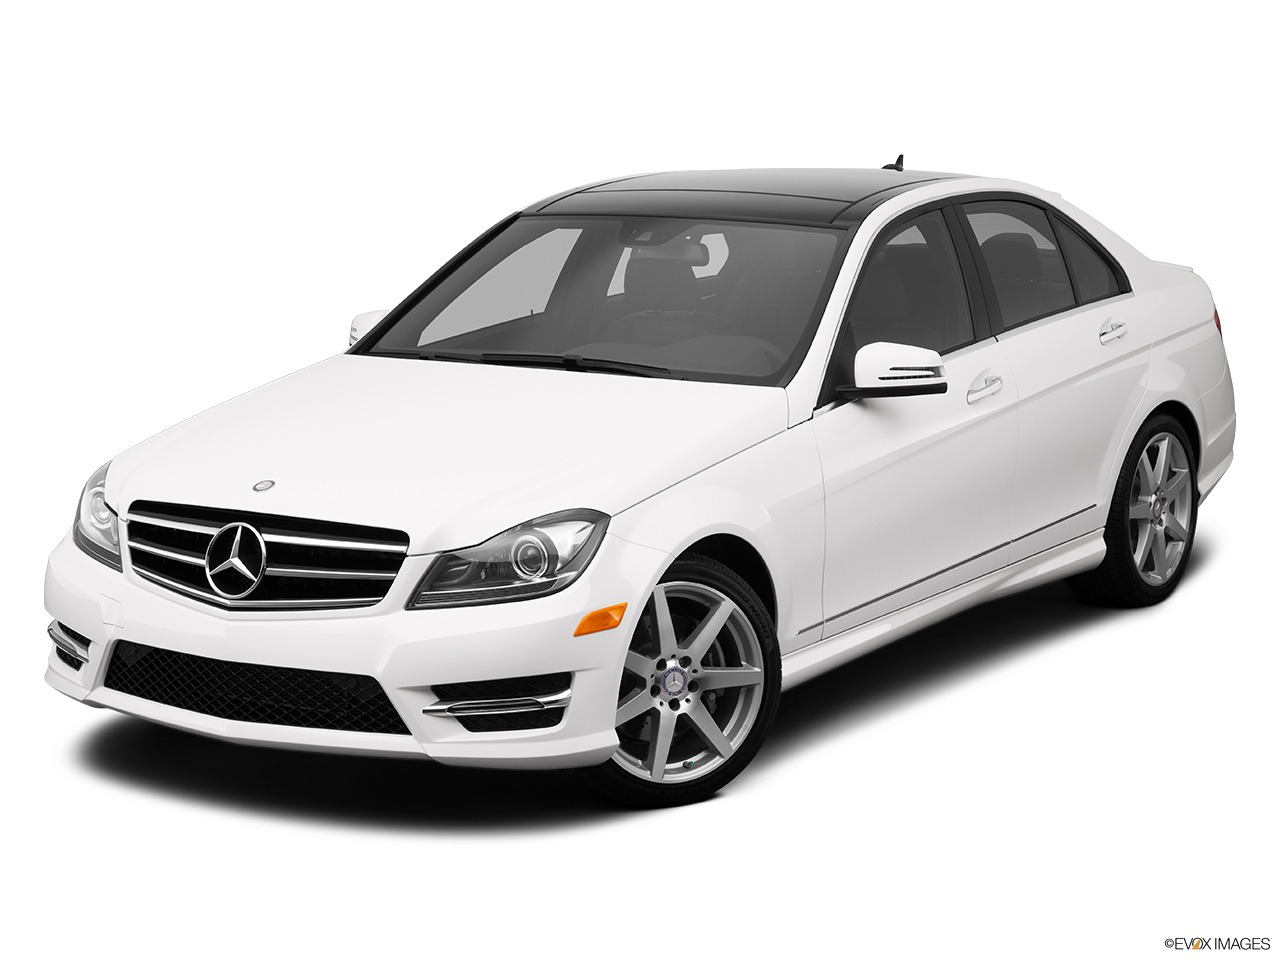 2014 mercedes benz c class sedan c300 sport 4matic for 2014 mercedes benz c class c300 sport